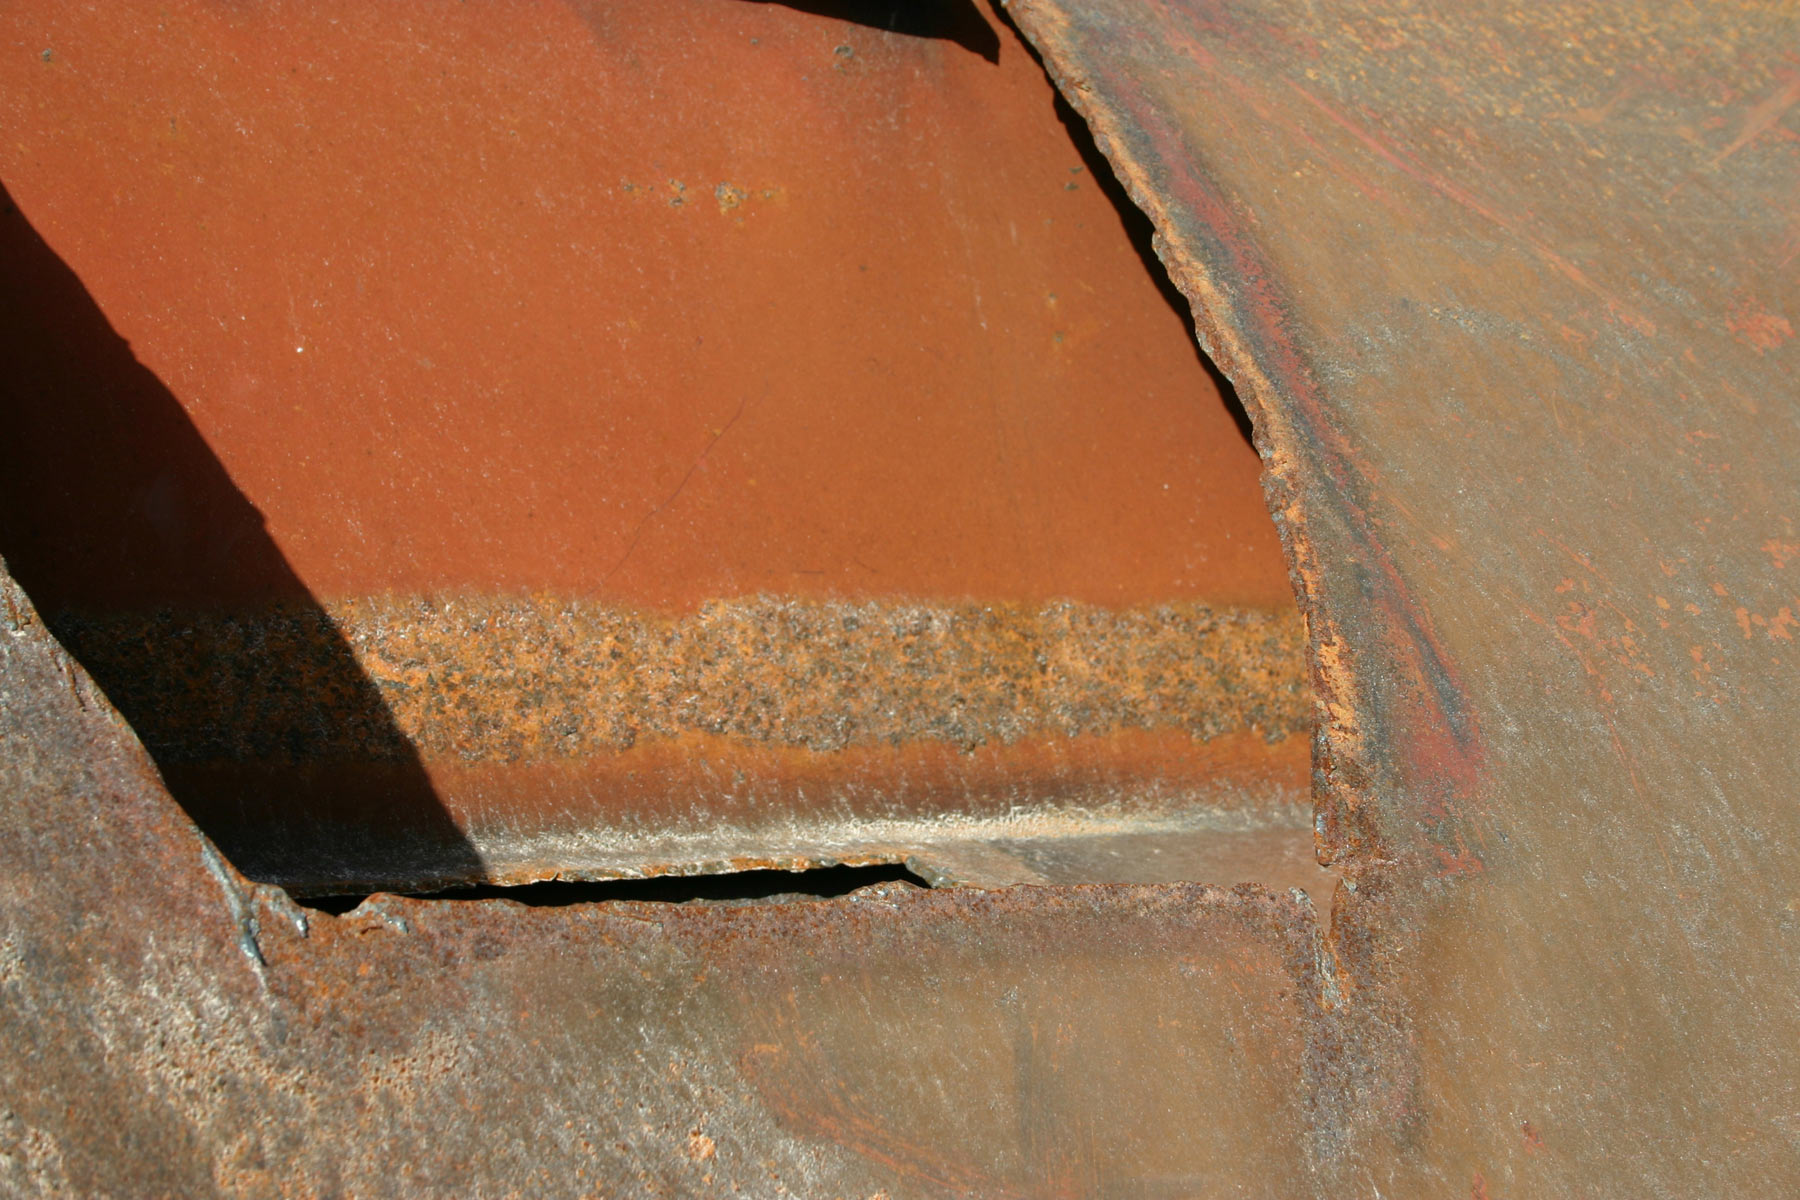 Rusted metal plates, Corrosion, Cut, Metal, Plates, HQ Photo